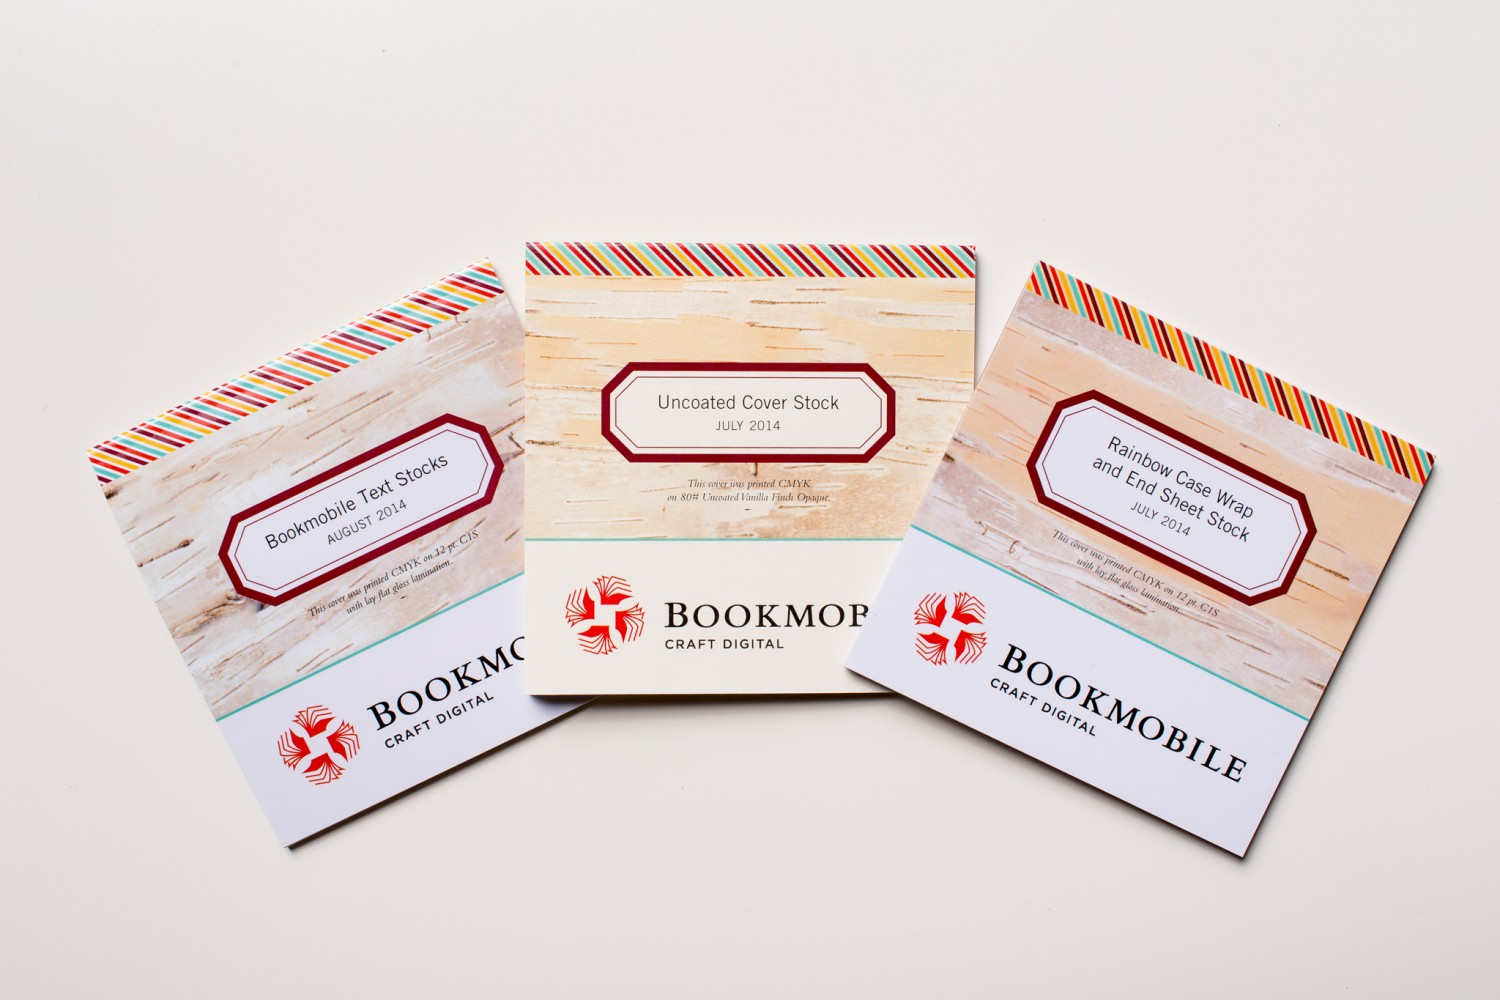 New Paper Stock Available at Bookmobile!